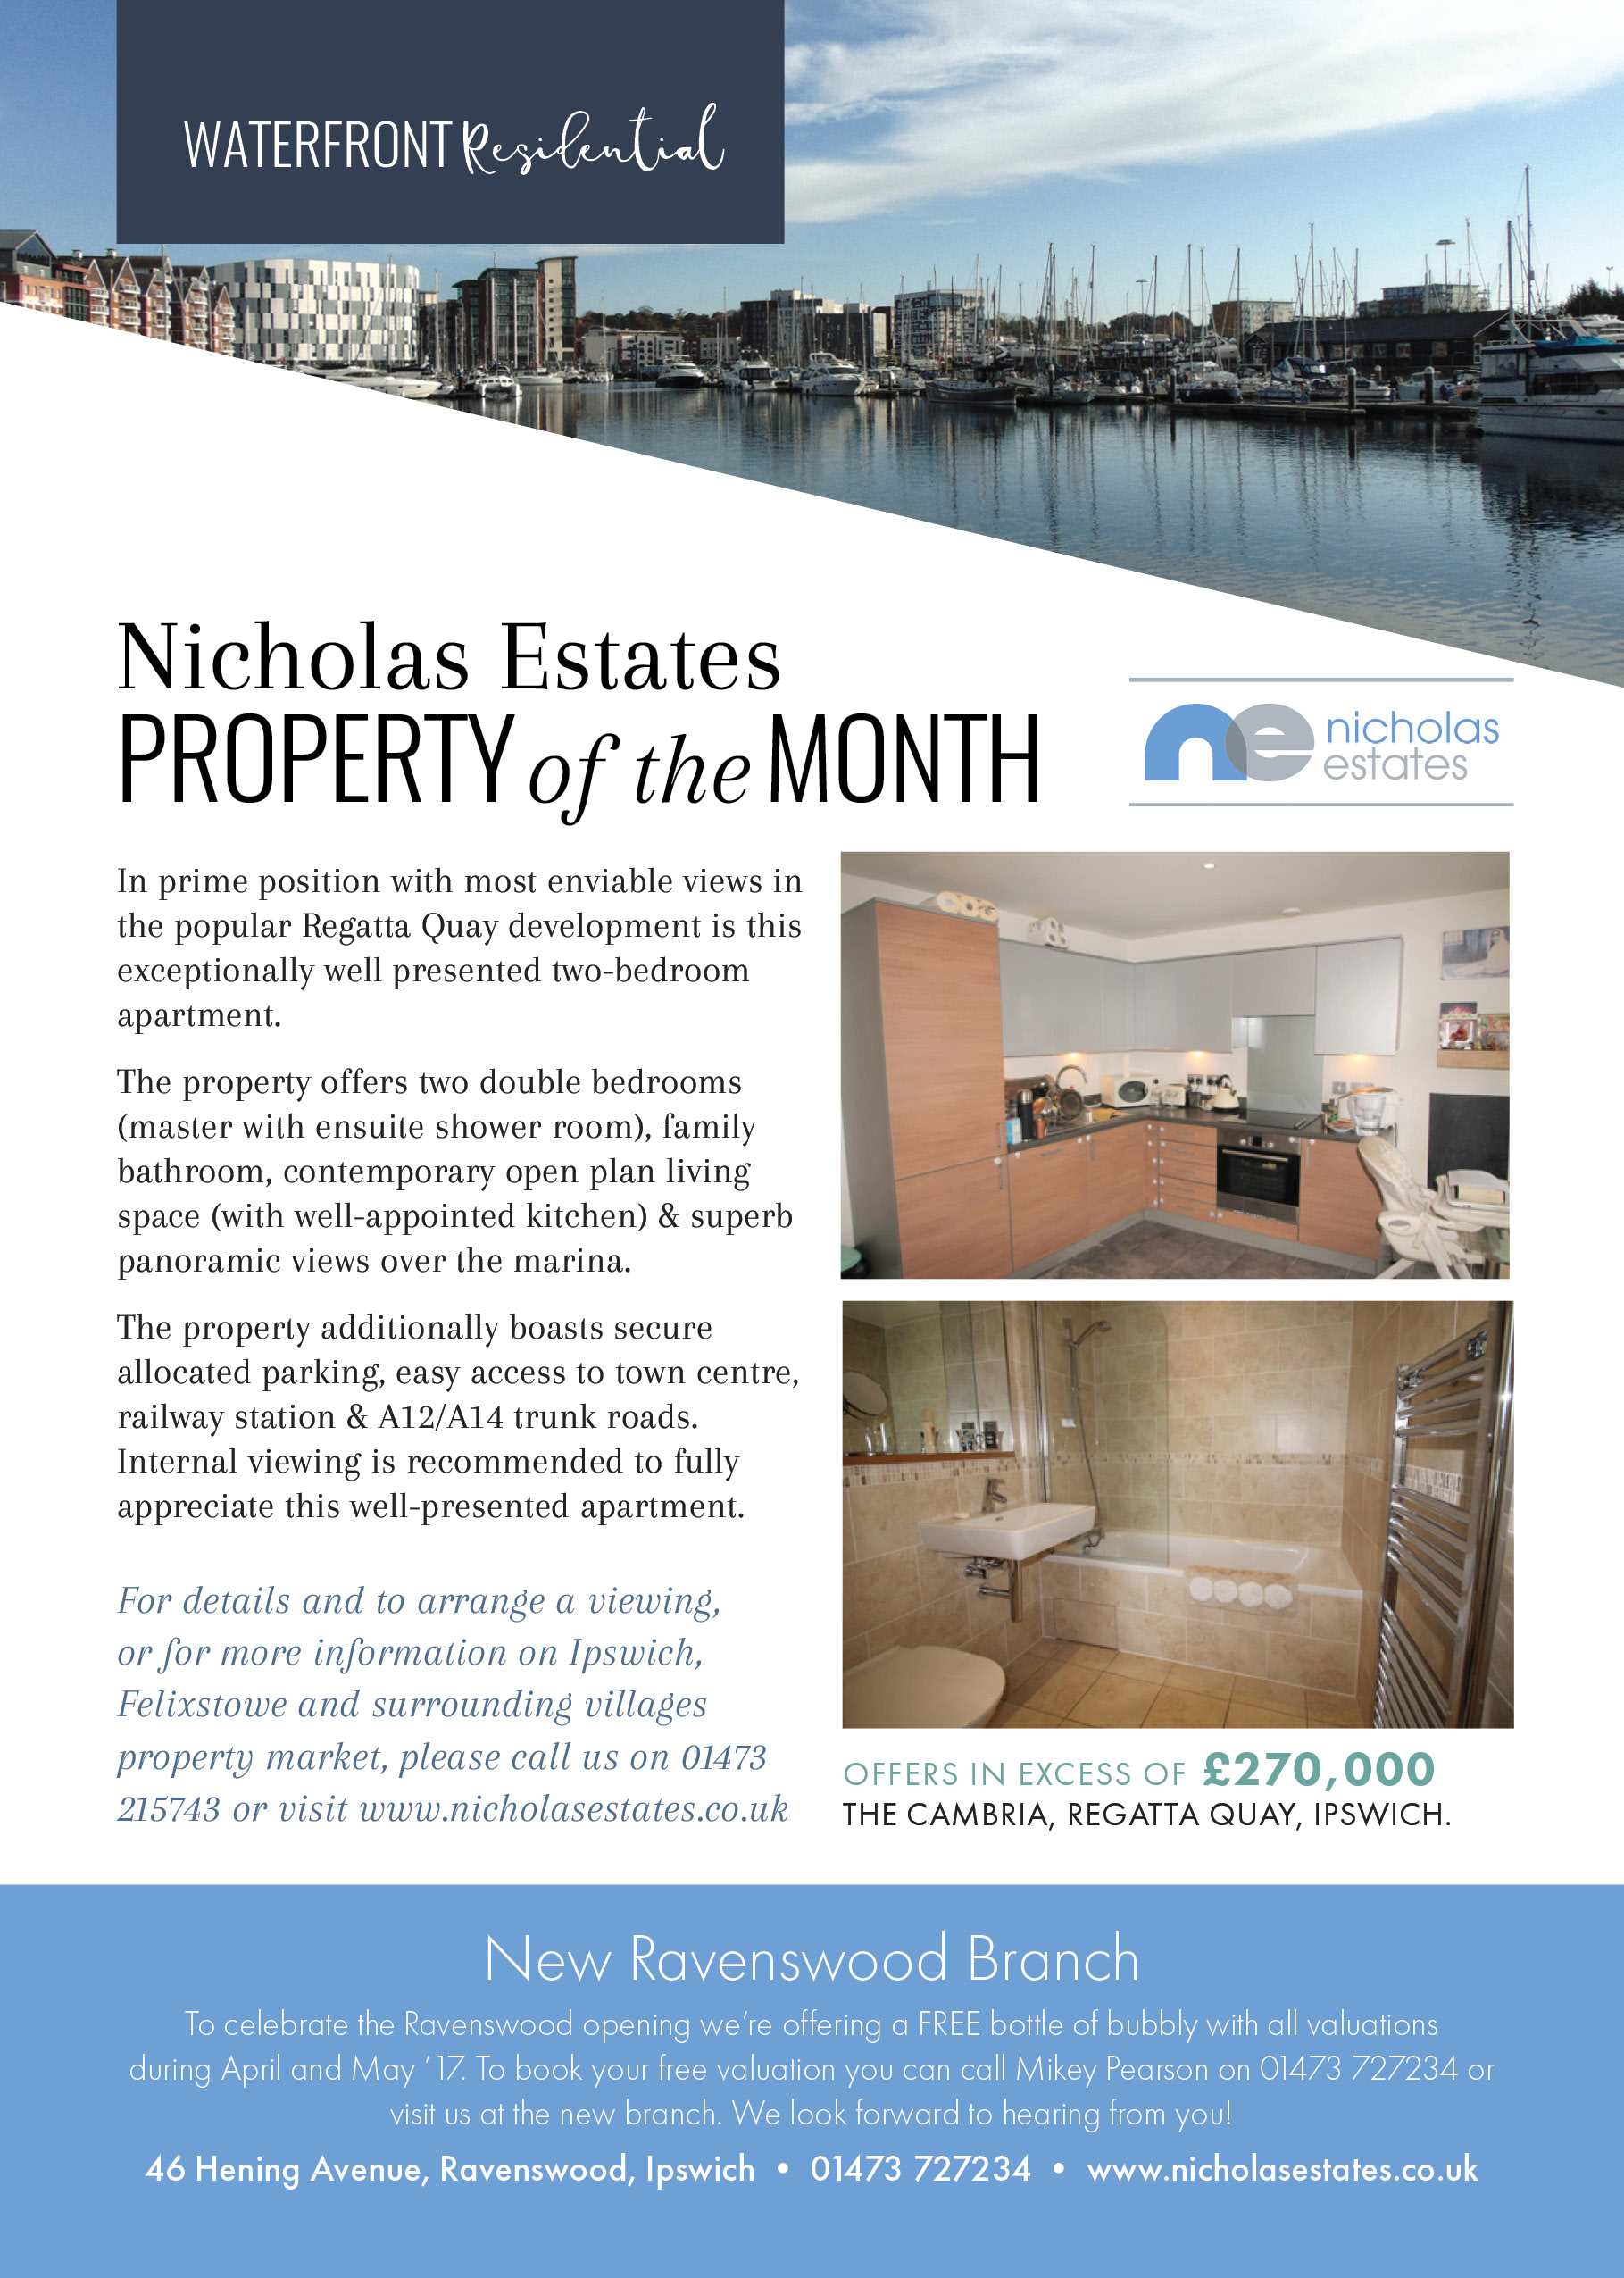 nicholas estates, property of the month, waterfront, ipswich